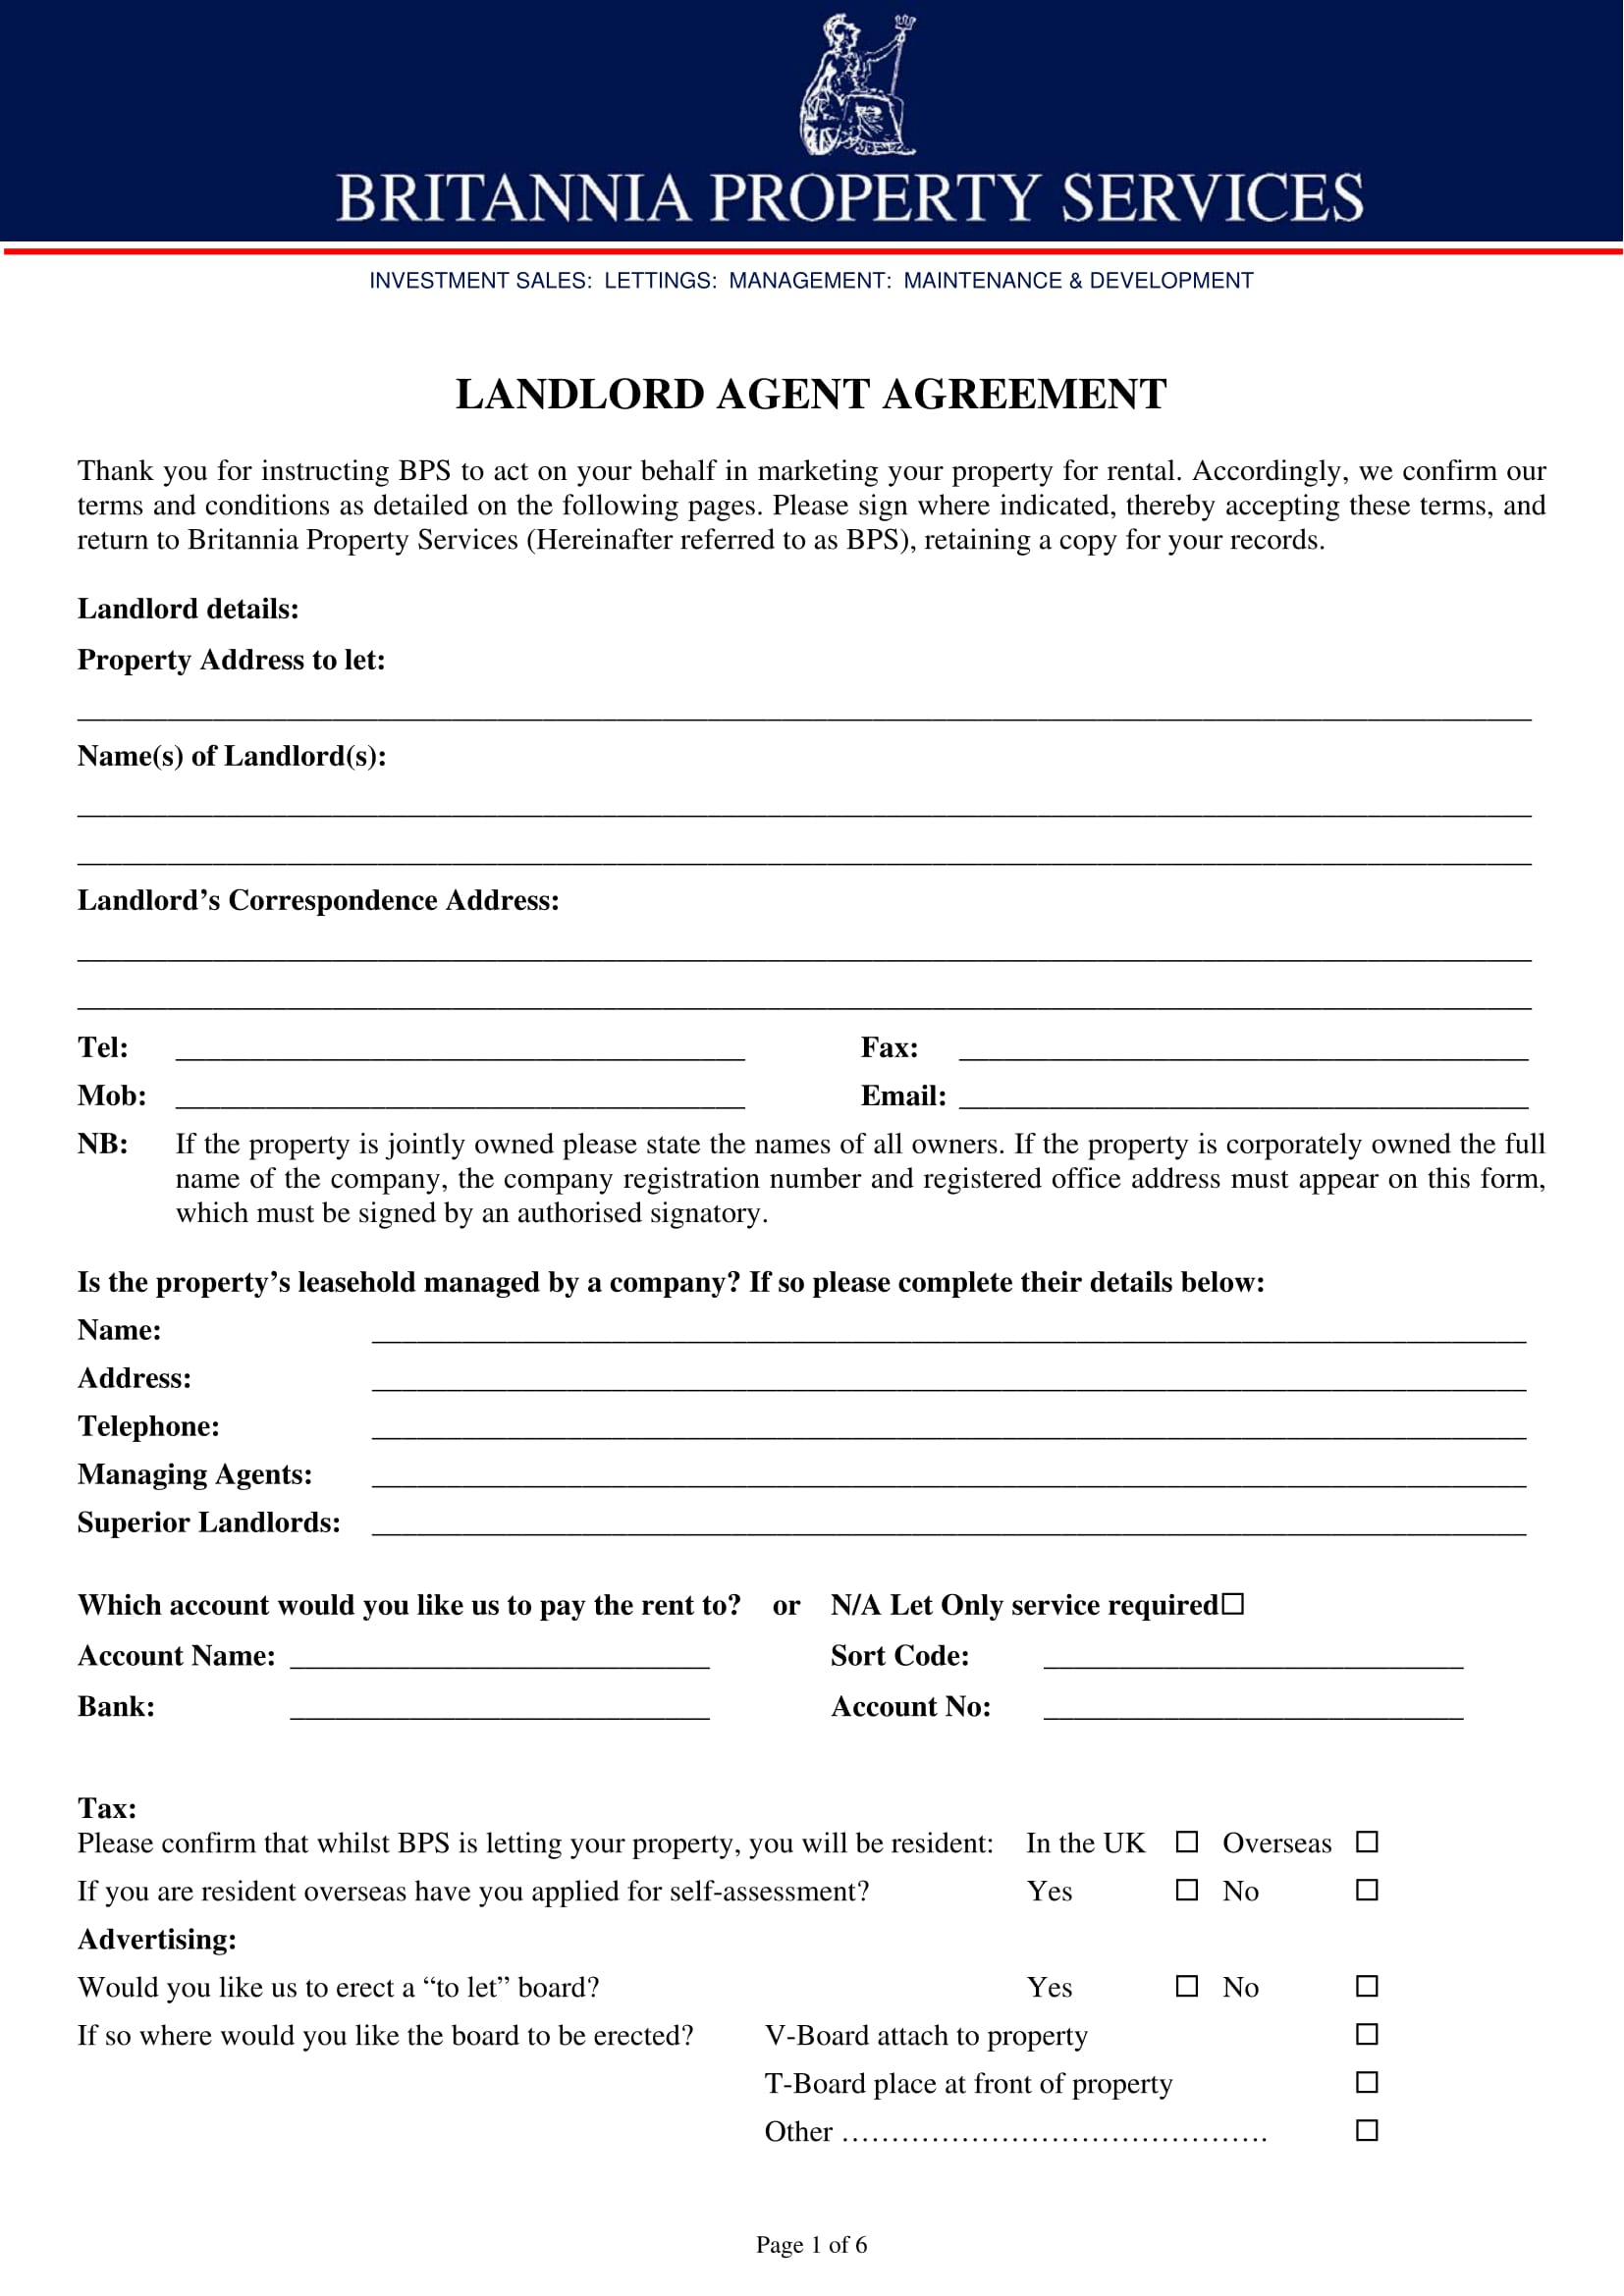 Landlord Agent Agreement Form 1